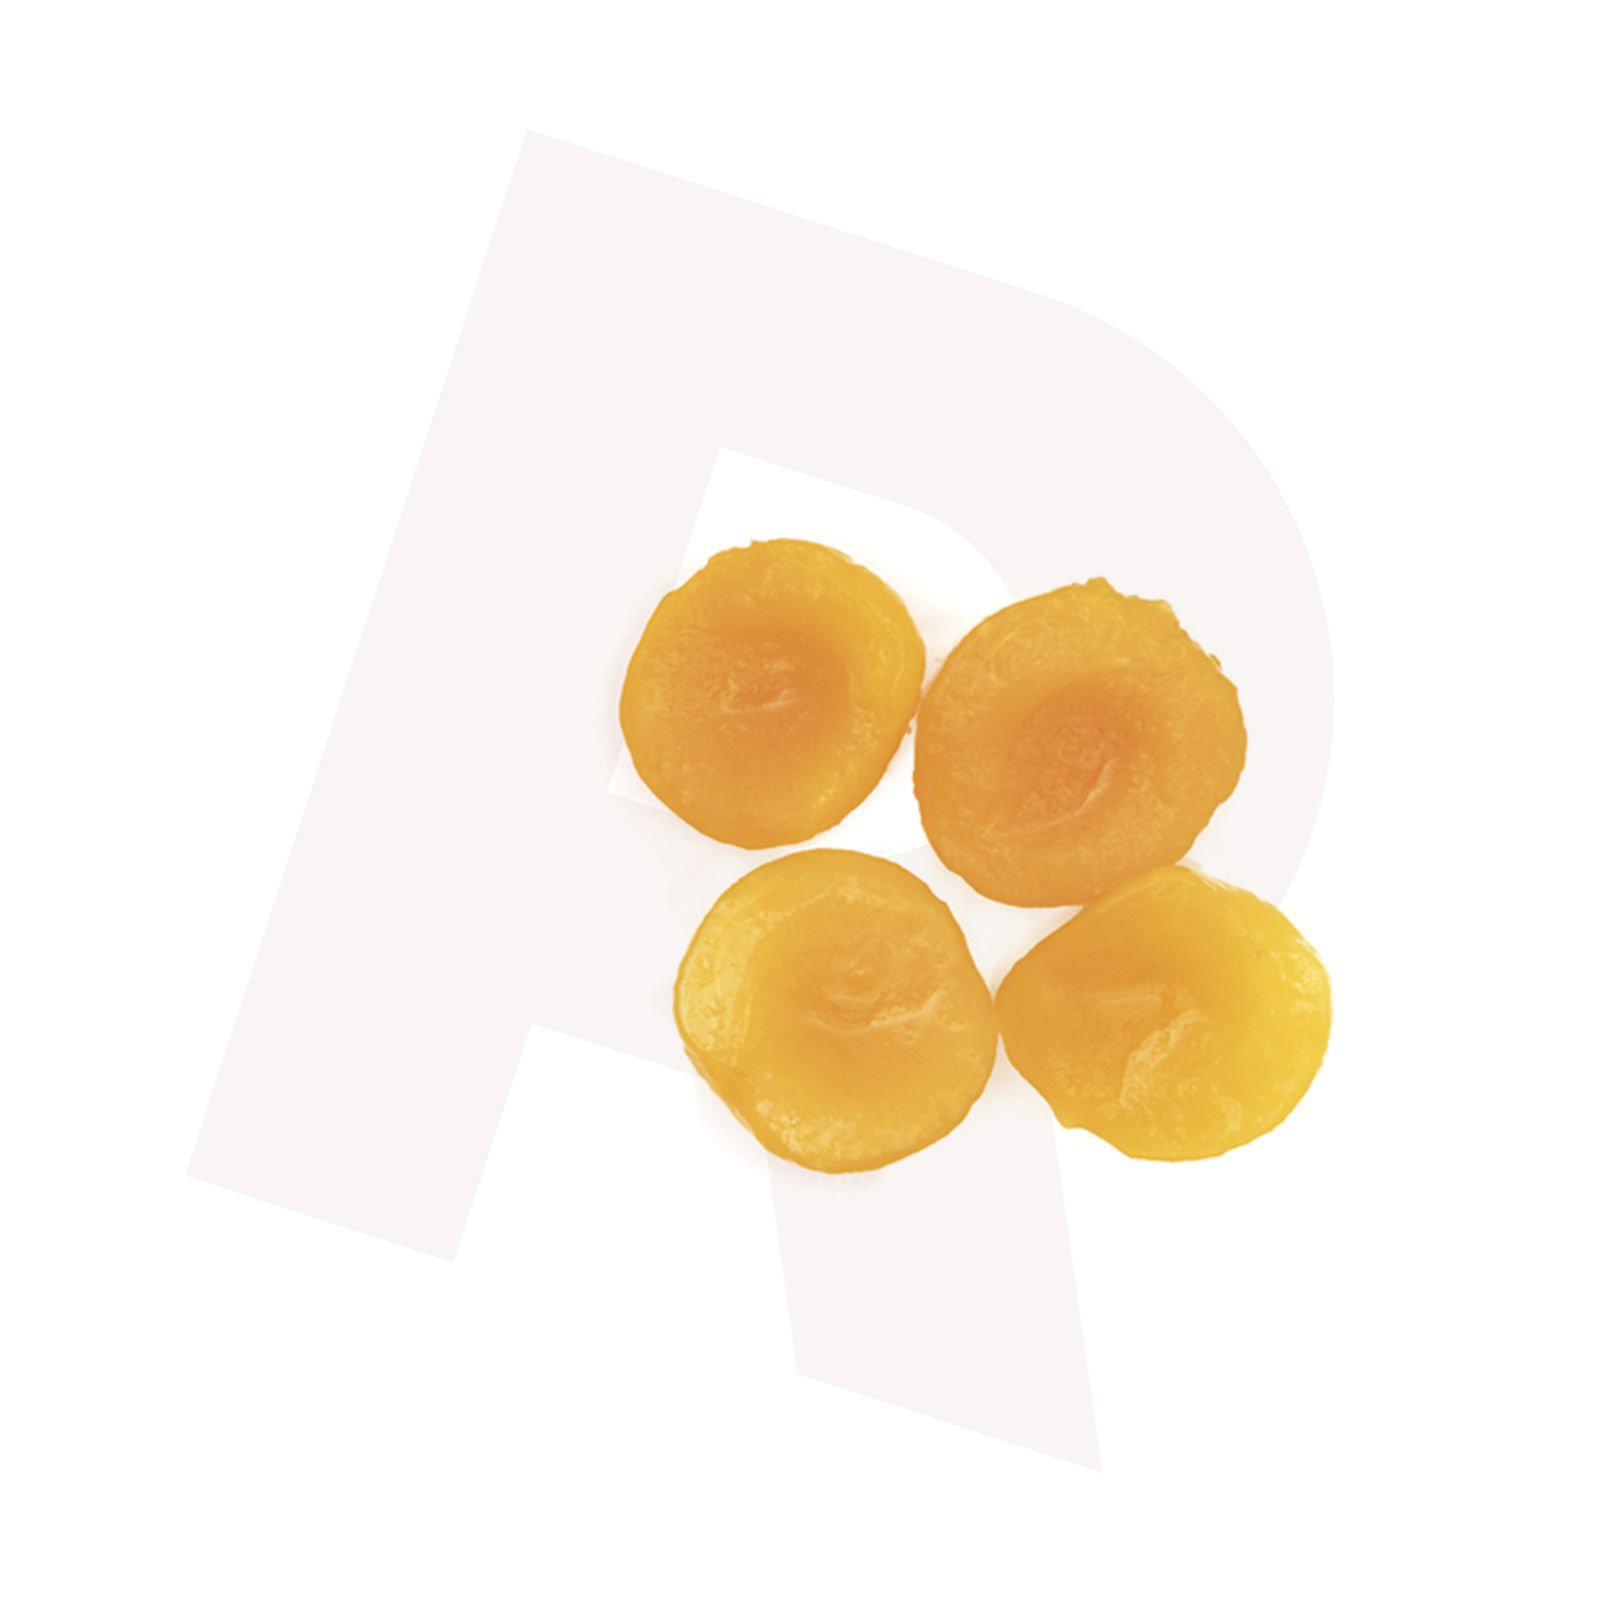 Fruit_Apricot-halves